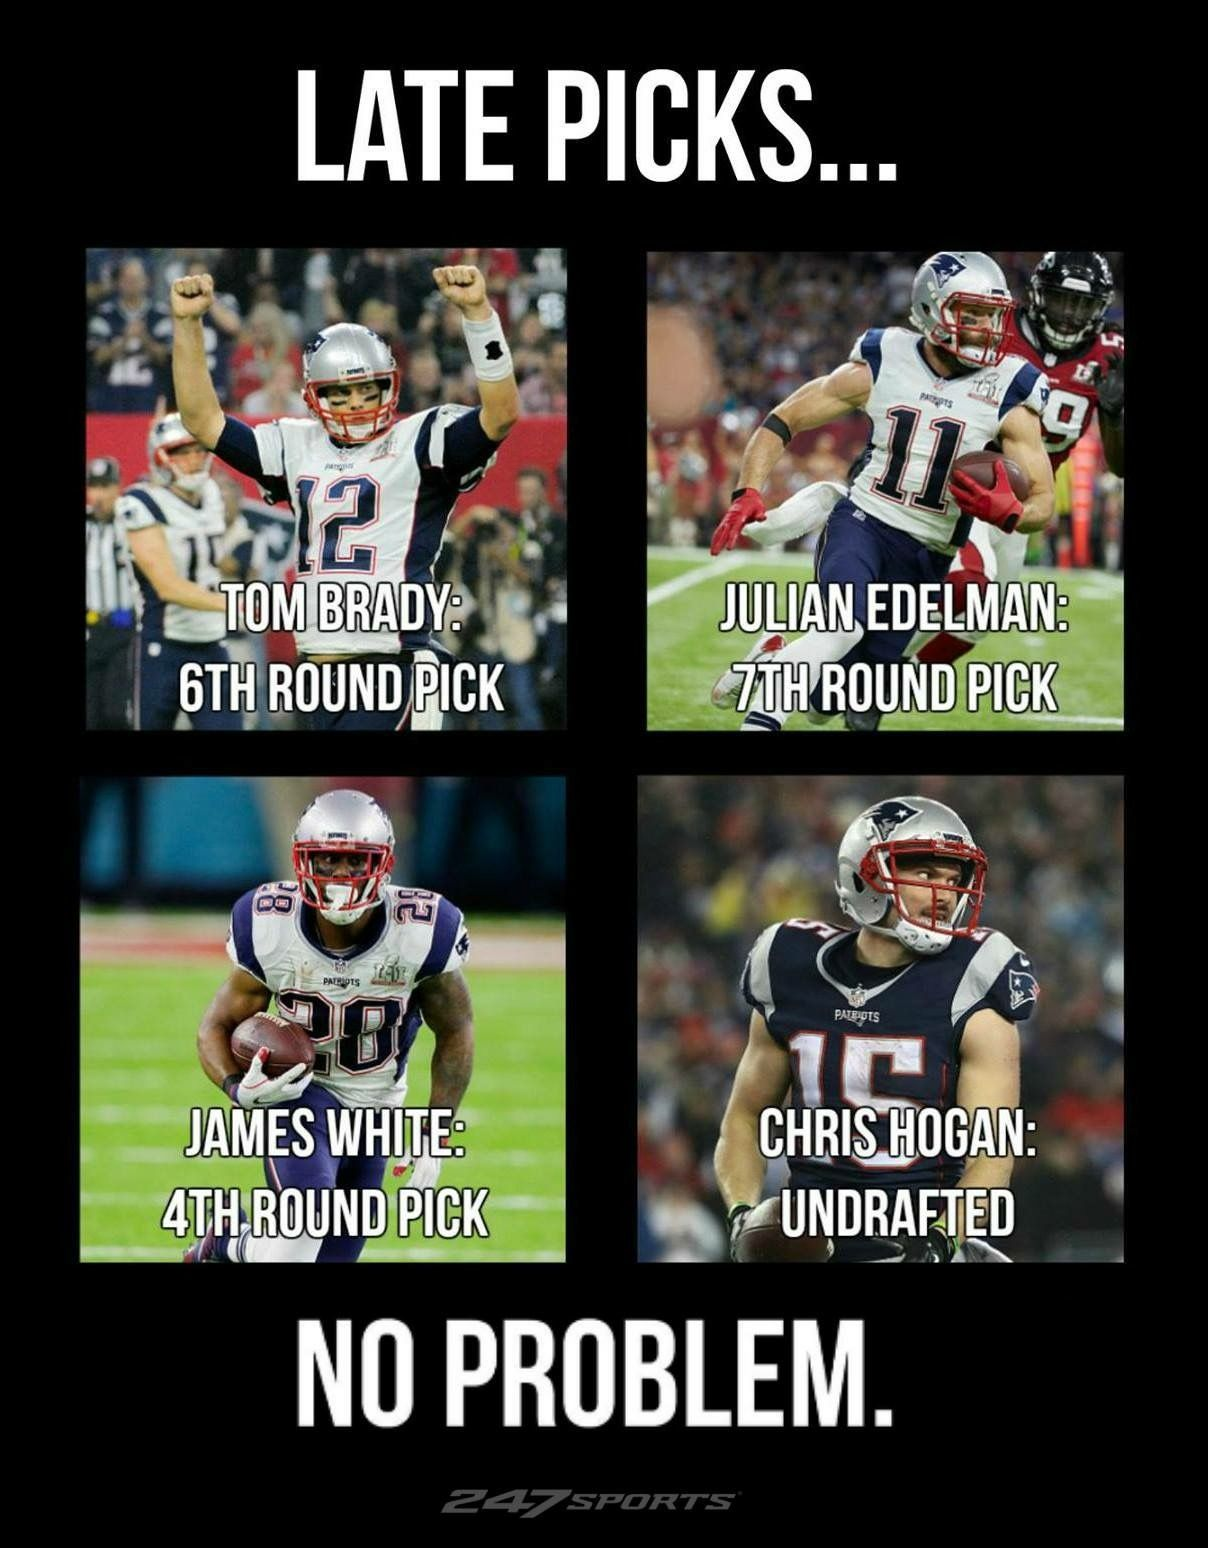 Nepats Always Come Out On Top Latepicks Noproblem New England Patriots Football New England Patriots England Sports